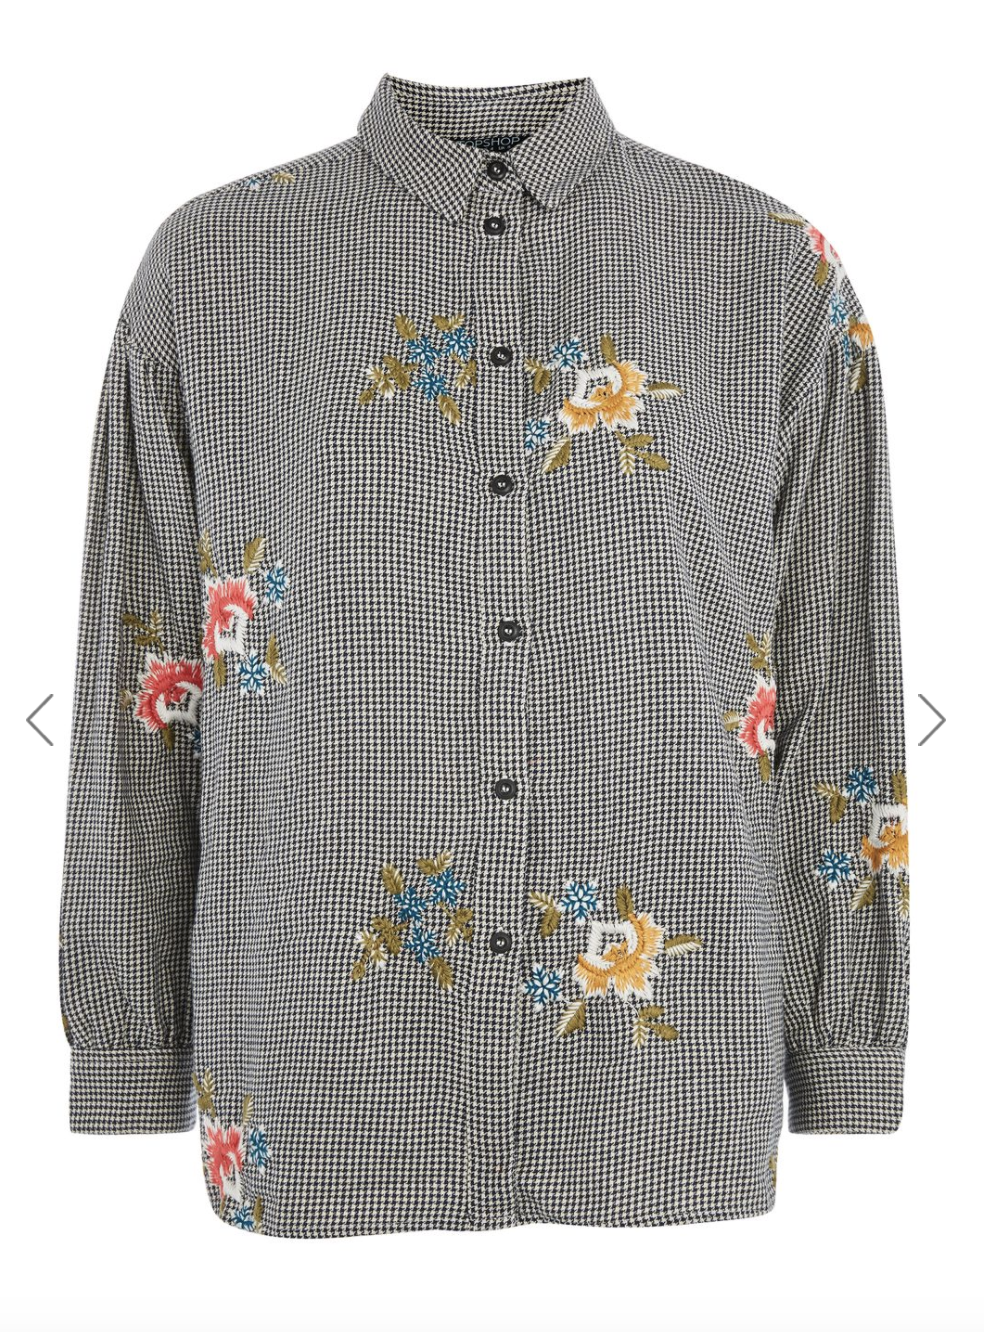 Loving embroidery. This TOPSHOP shirt is perfect for my brunch!